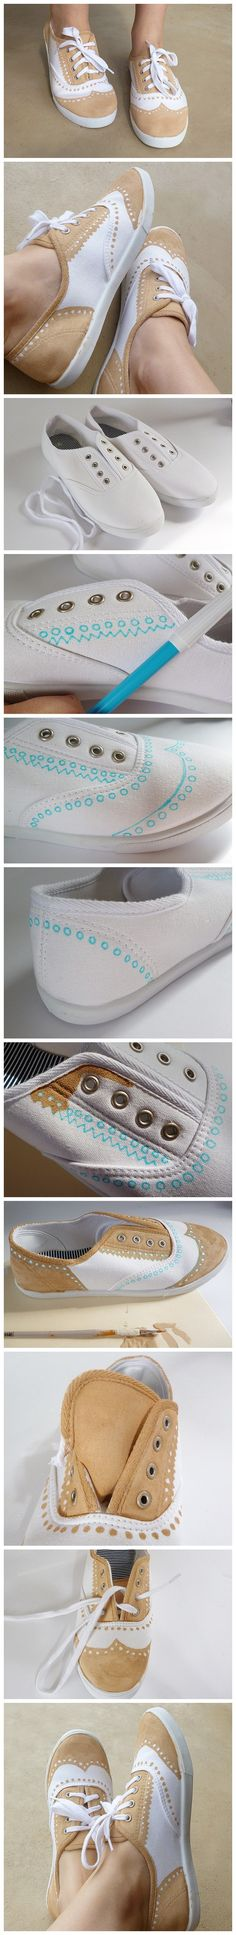 Tutorial zapatillas